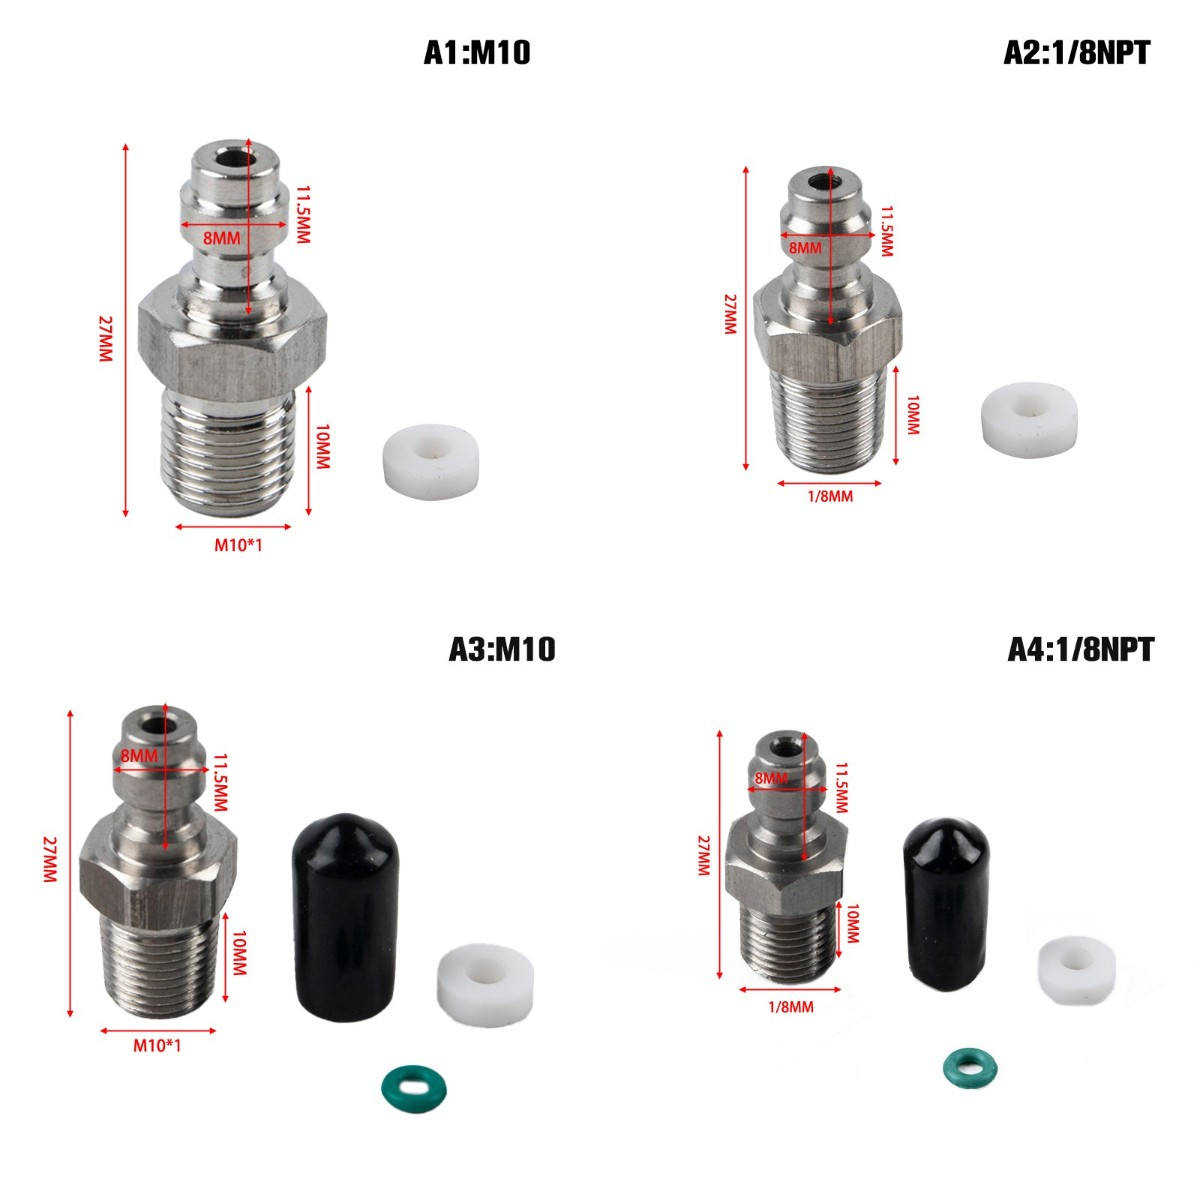 PCP Paintball Pneumatic Quick Coupler 8MM M10x1 Male Plug Adapter Fittings 1/8NPT Air Refilling Stainless Steel 1Set